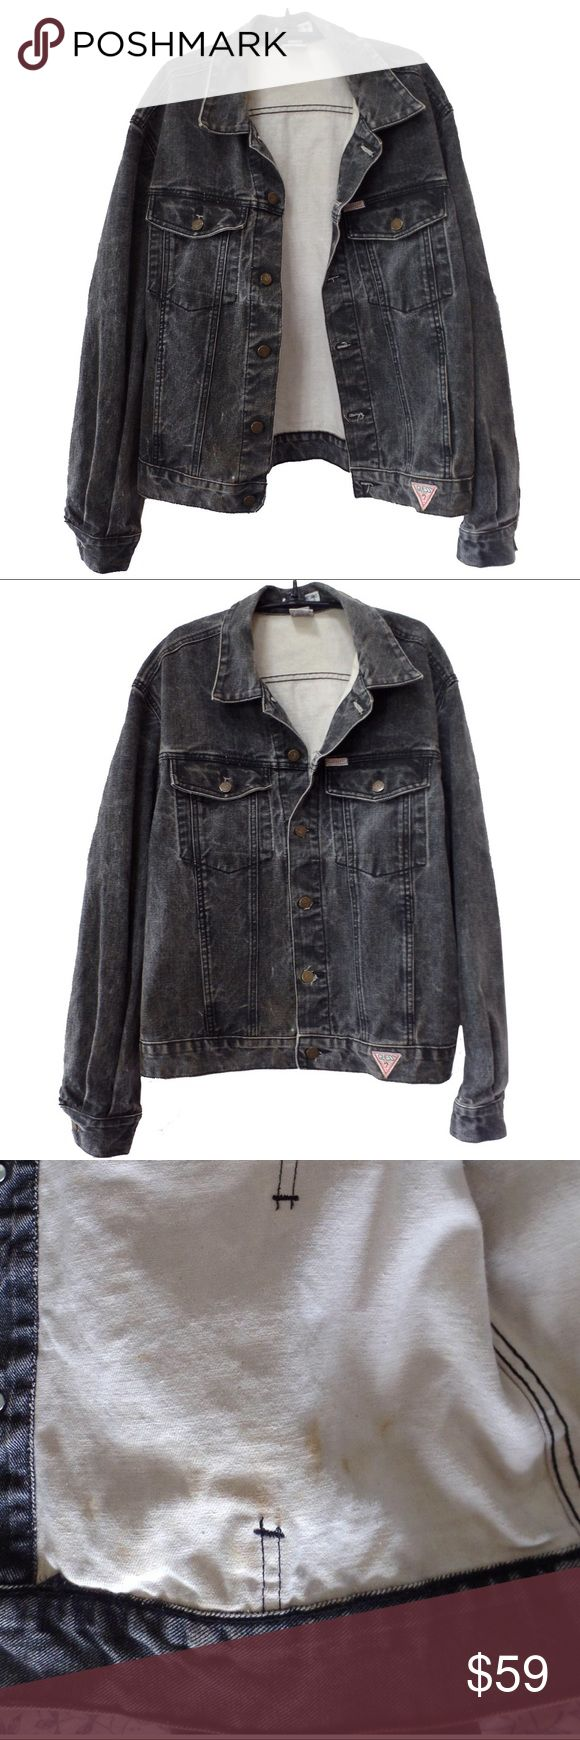 """Cool retro GUESS Marciano quality jean jacket Great quality fabric - washed black. This is the """"designer division"""" by GUESS founder Georges Marciano. Made in US, very cool, some stains on the inside. 46"""" pit-to-pit around, 26"""" long. Guess by Marciano Jackets & Coats Lightweight & Shirt Jackets"""